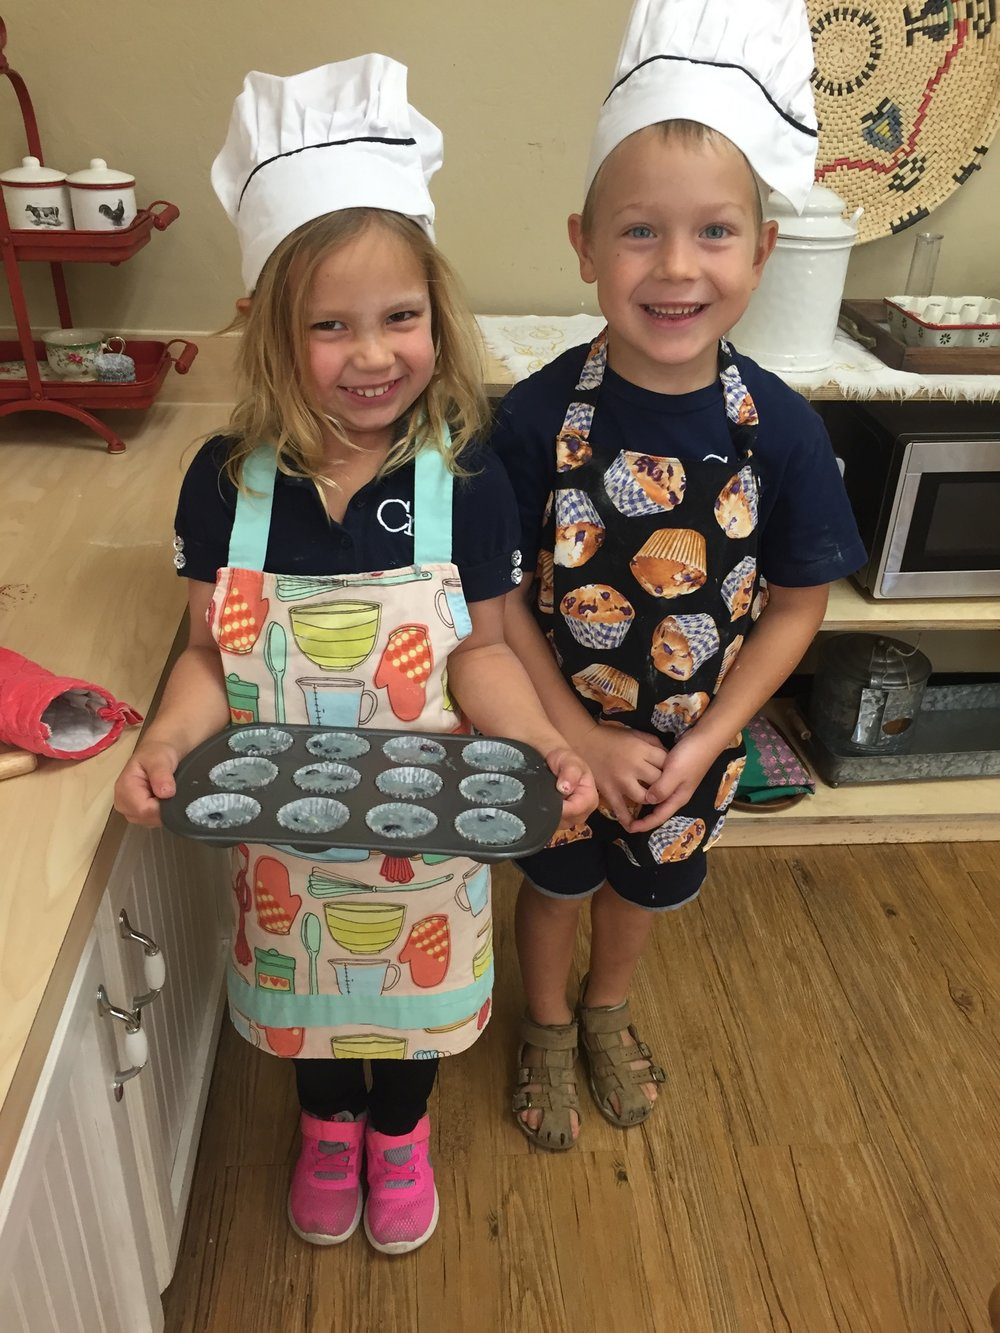 Baking blueberry muffins on her Birthday!